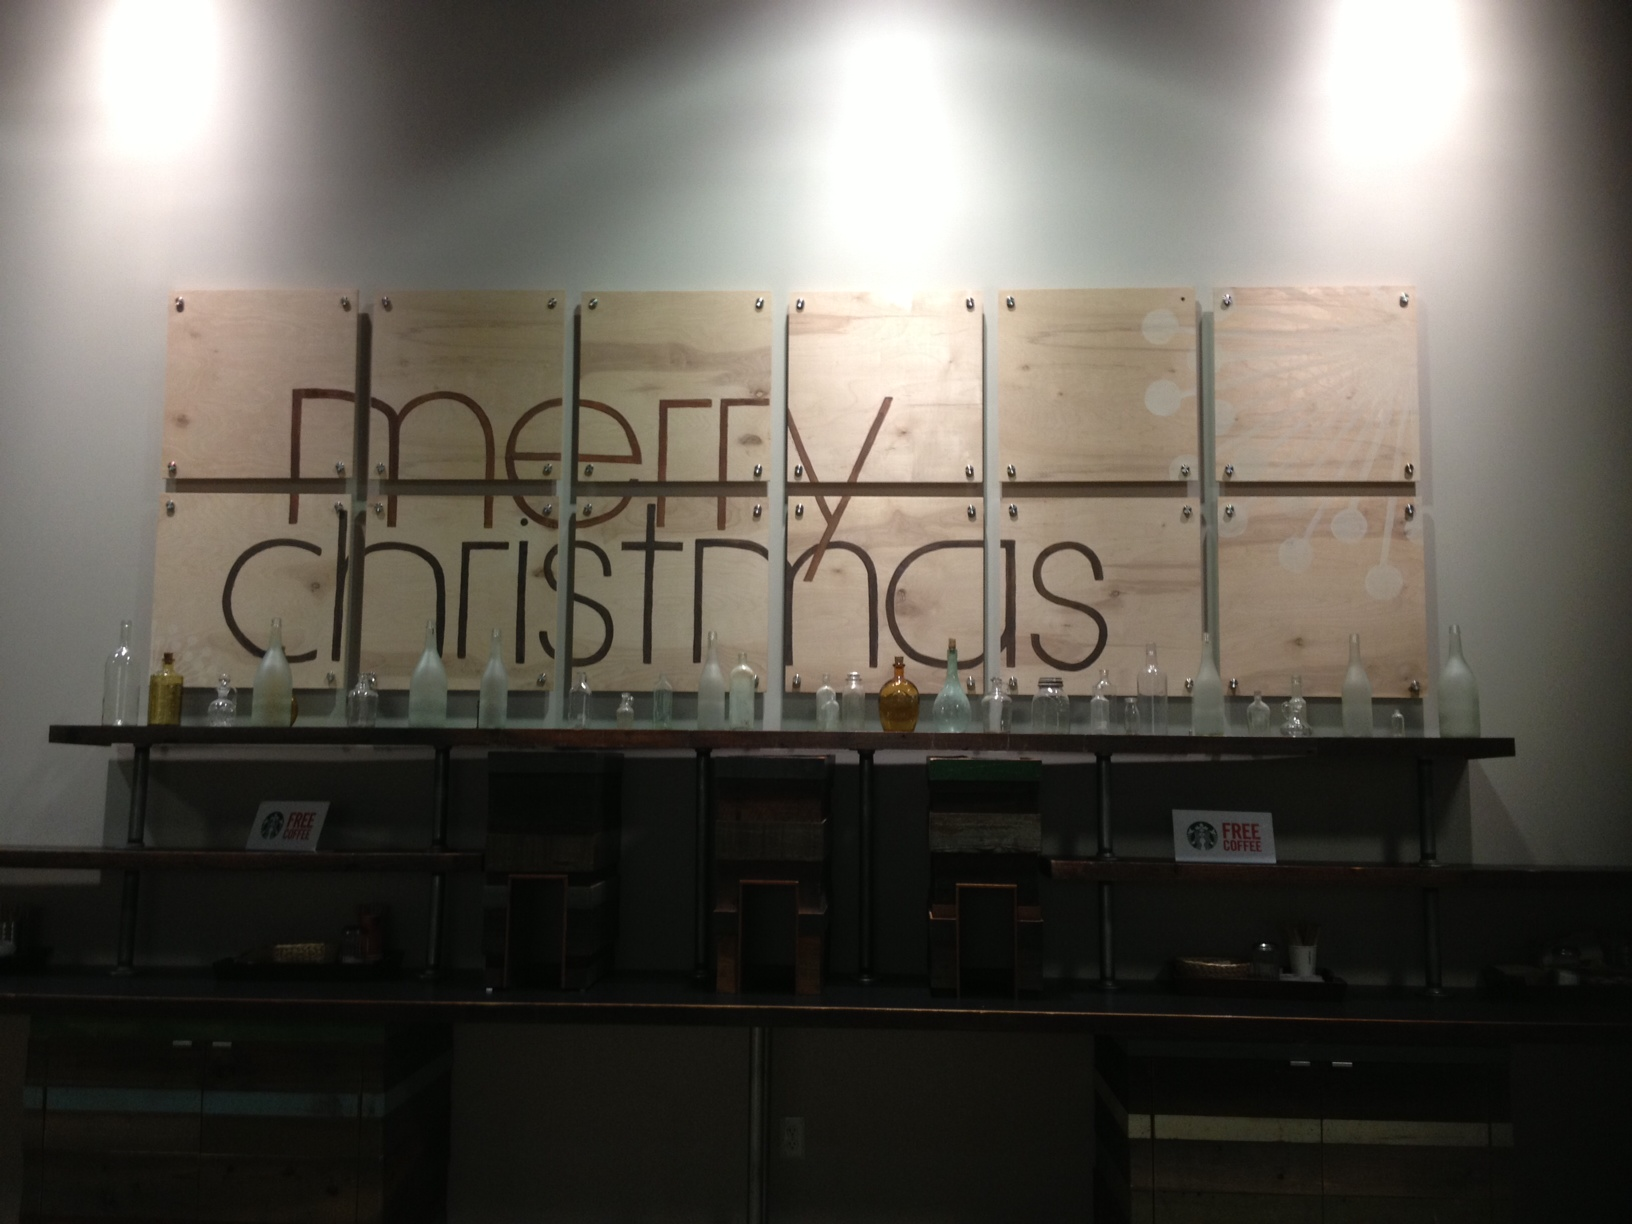 the usual art piece swapped out for our merry message